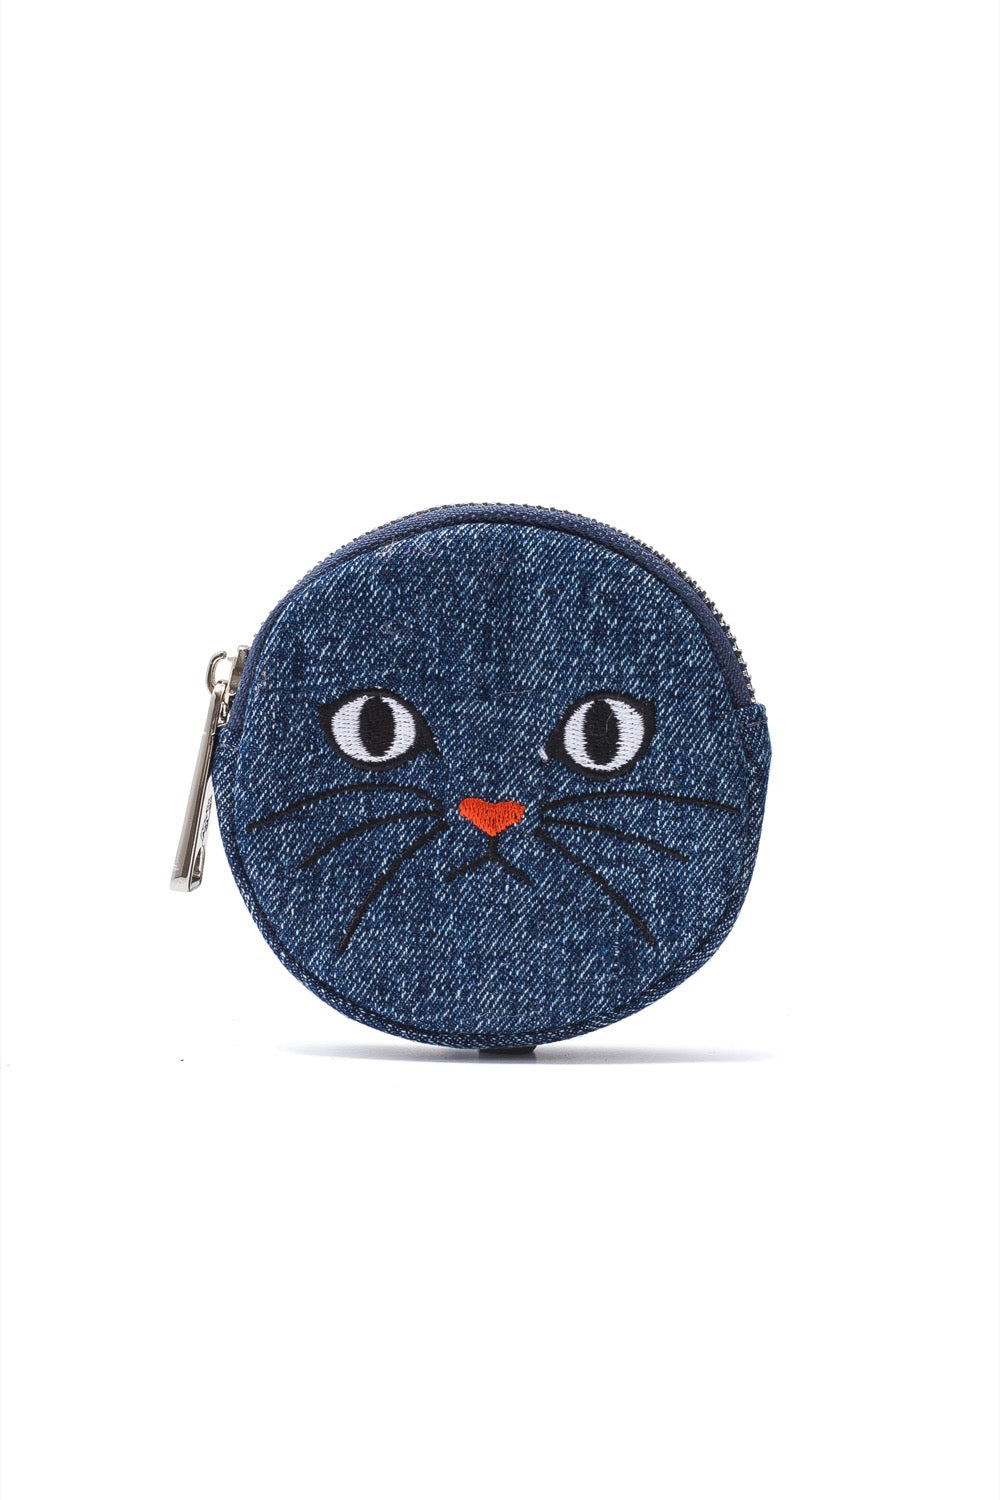 Indiana Cat Purse